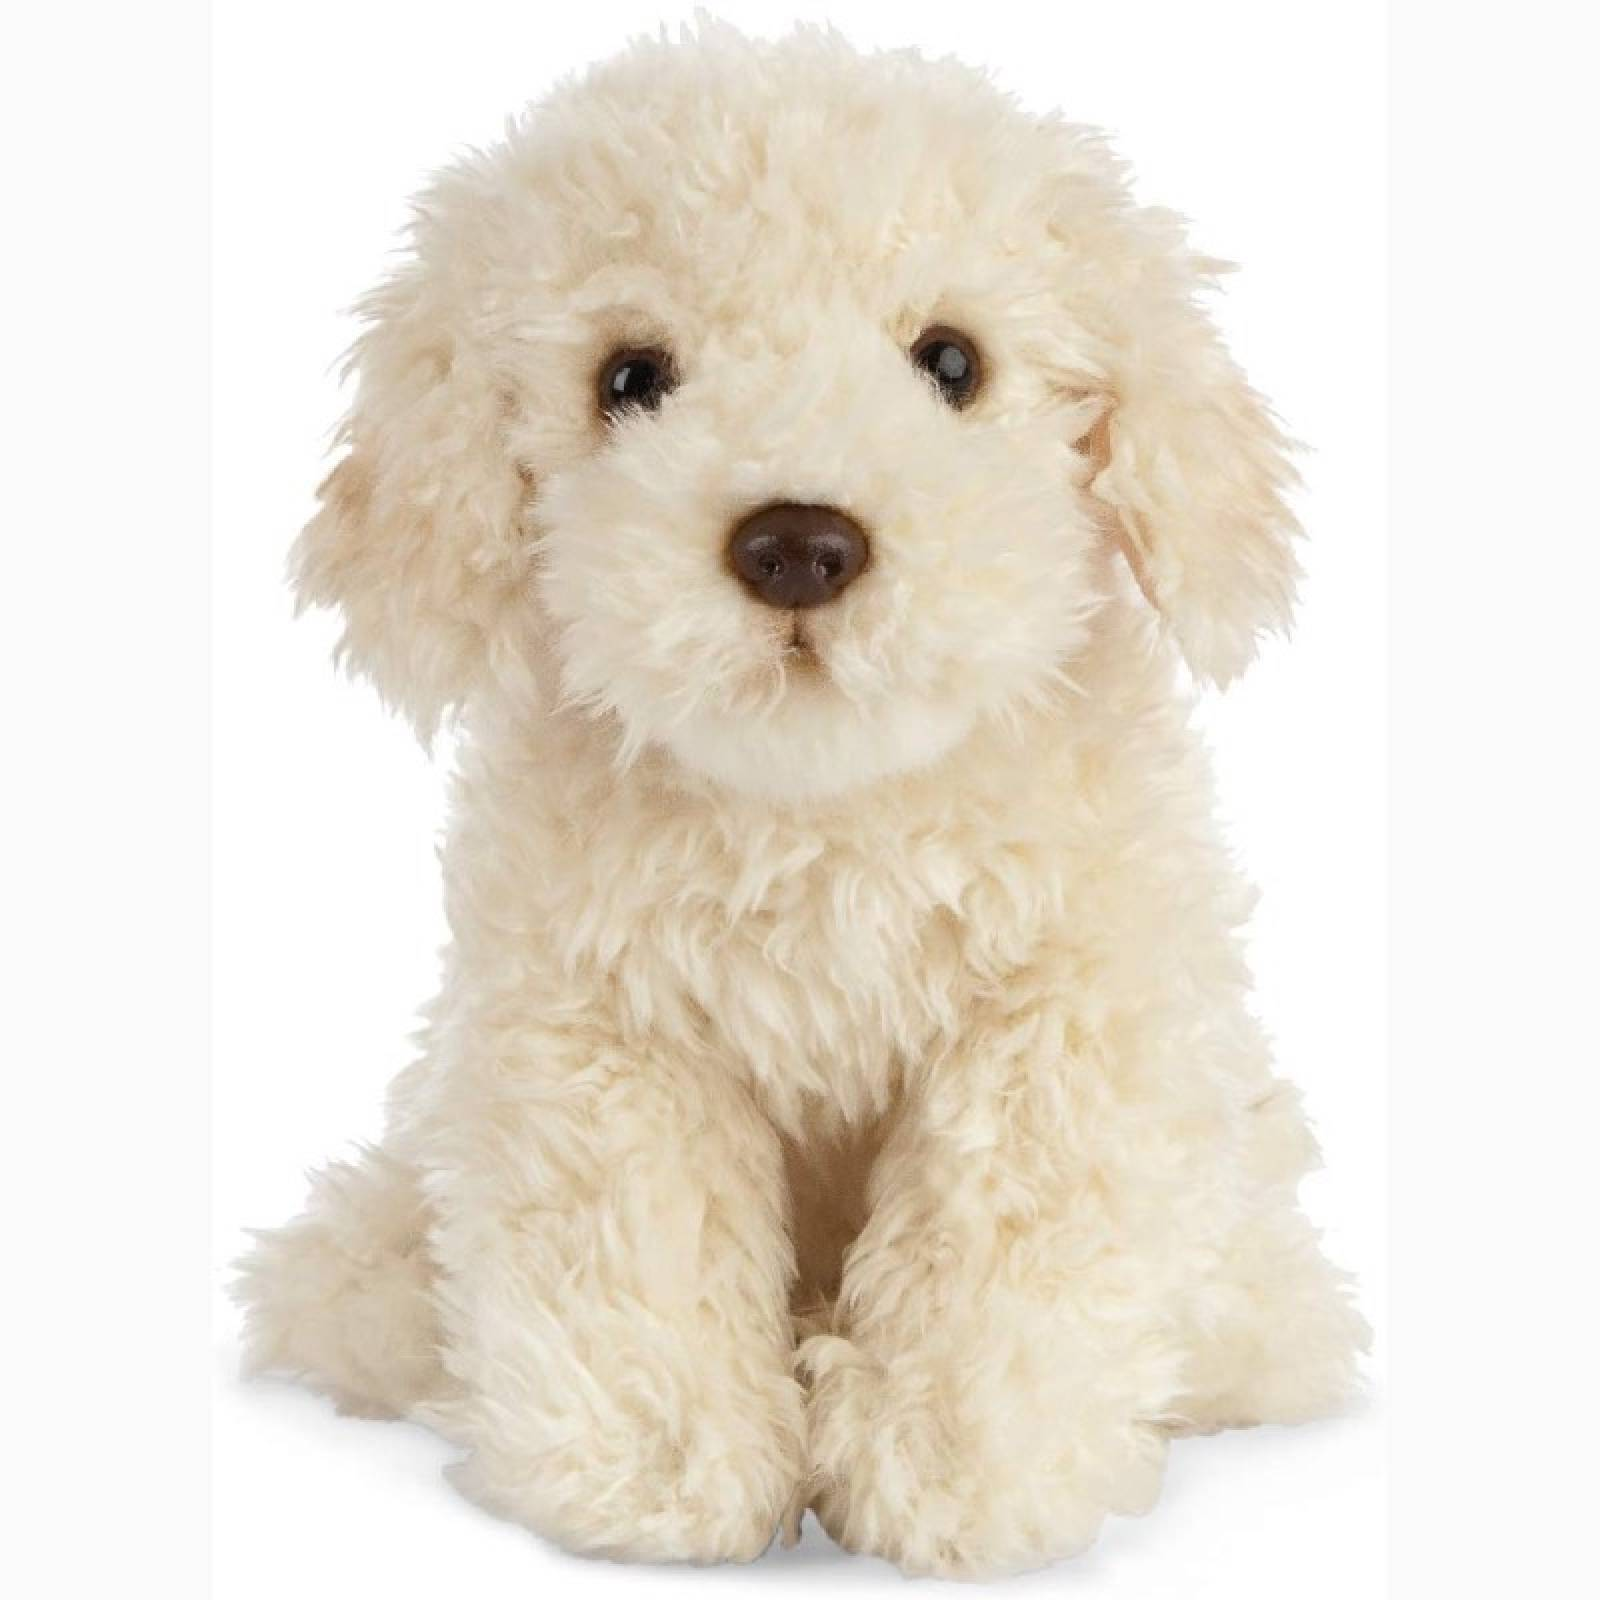 Labradoodle Puppy Soft Toy 0+